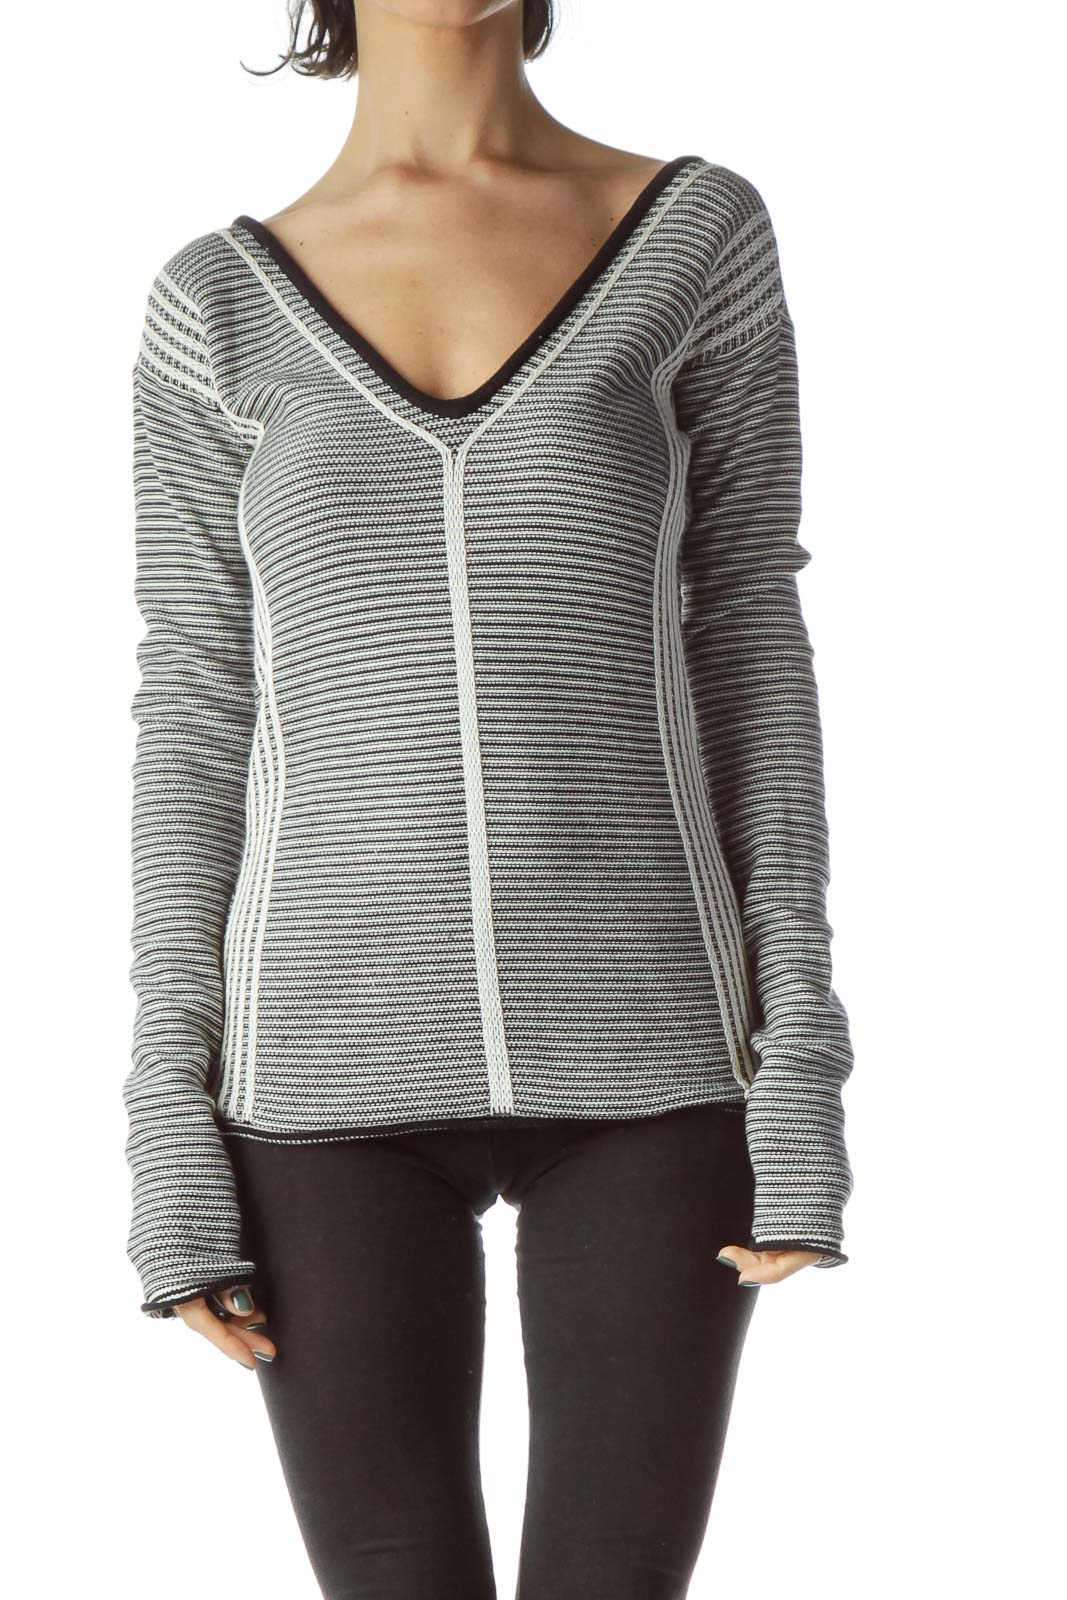 Black Cream Striped Textured Open Neck Knit Top